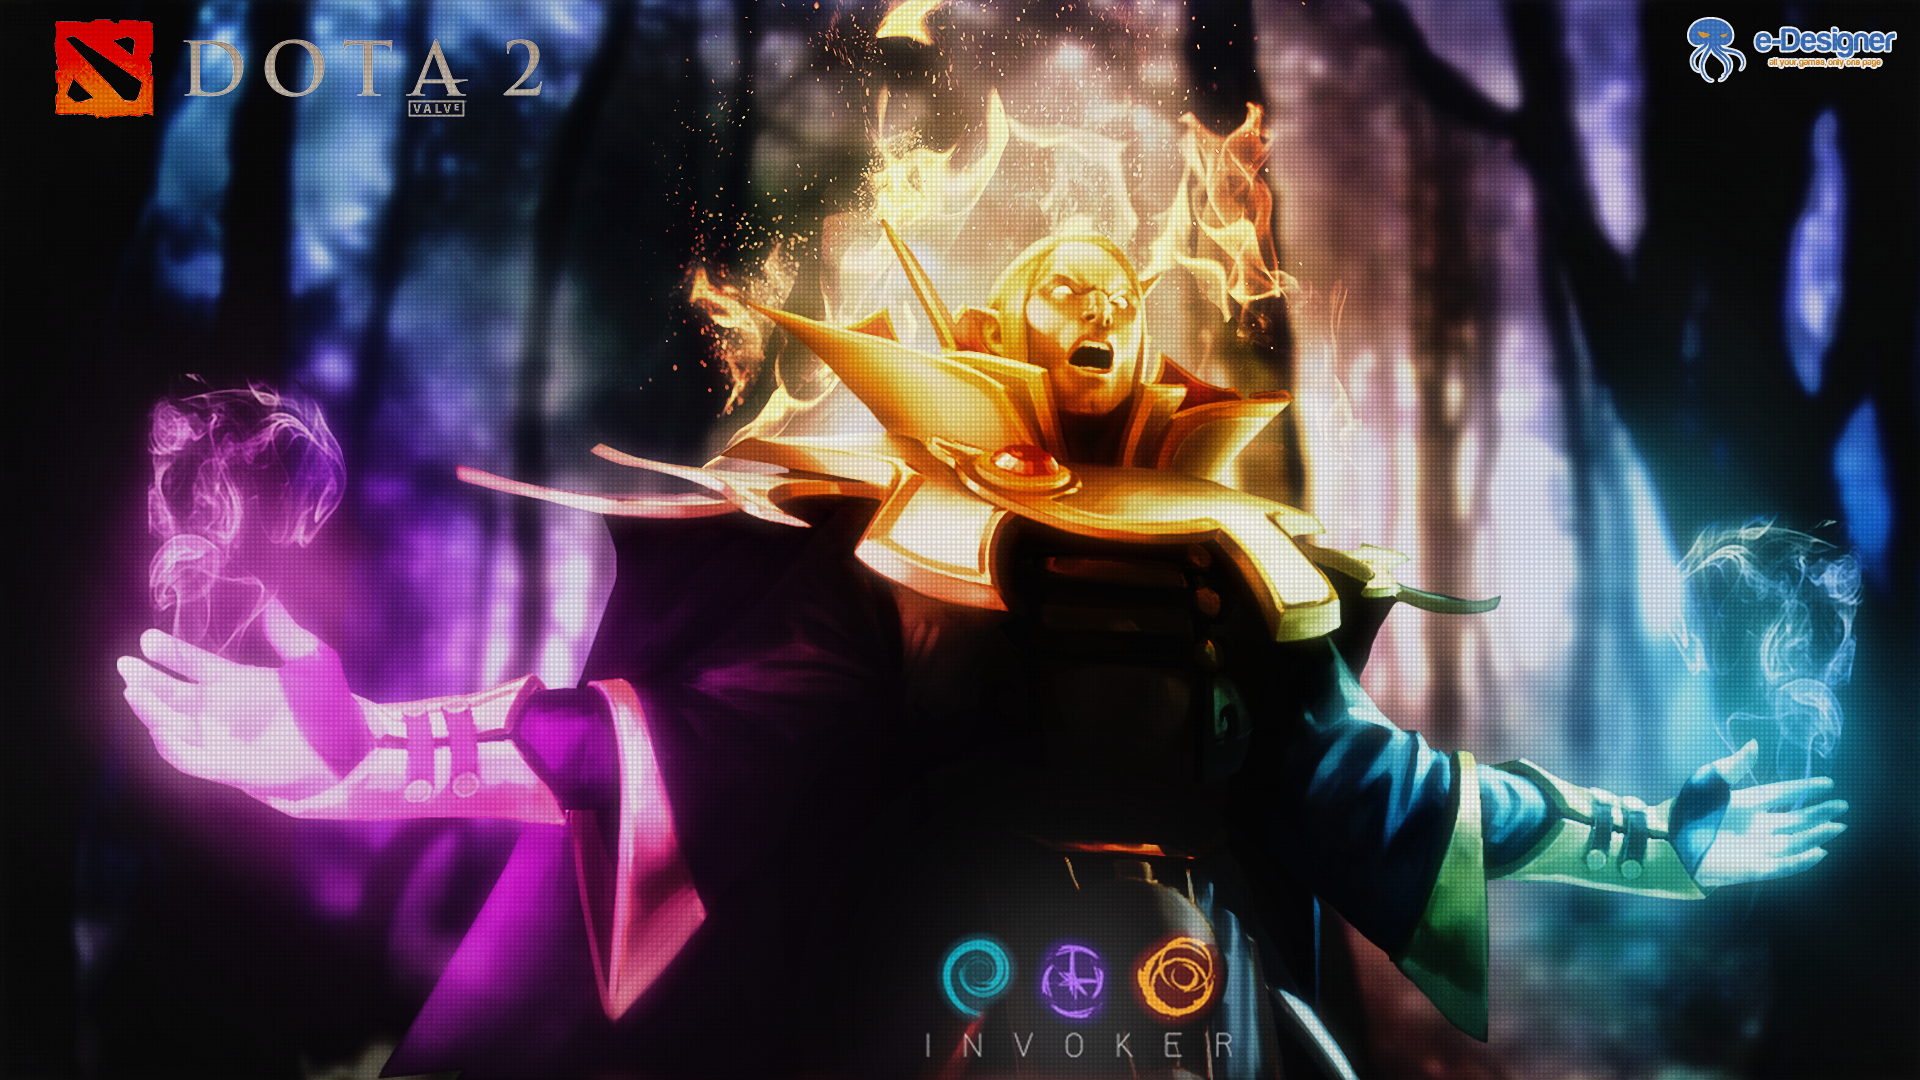 Invoker - Dota 2 - Wallpaper by regdsdesign on DeviantArt